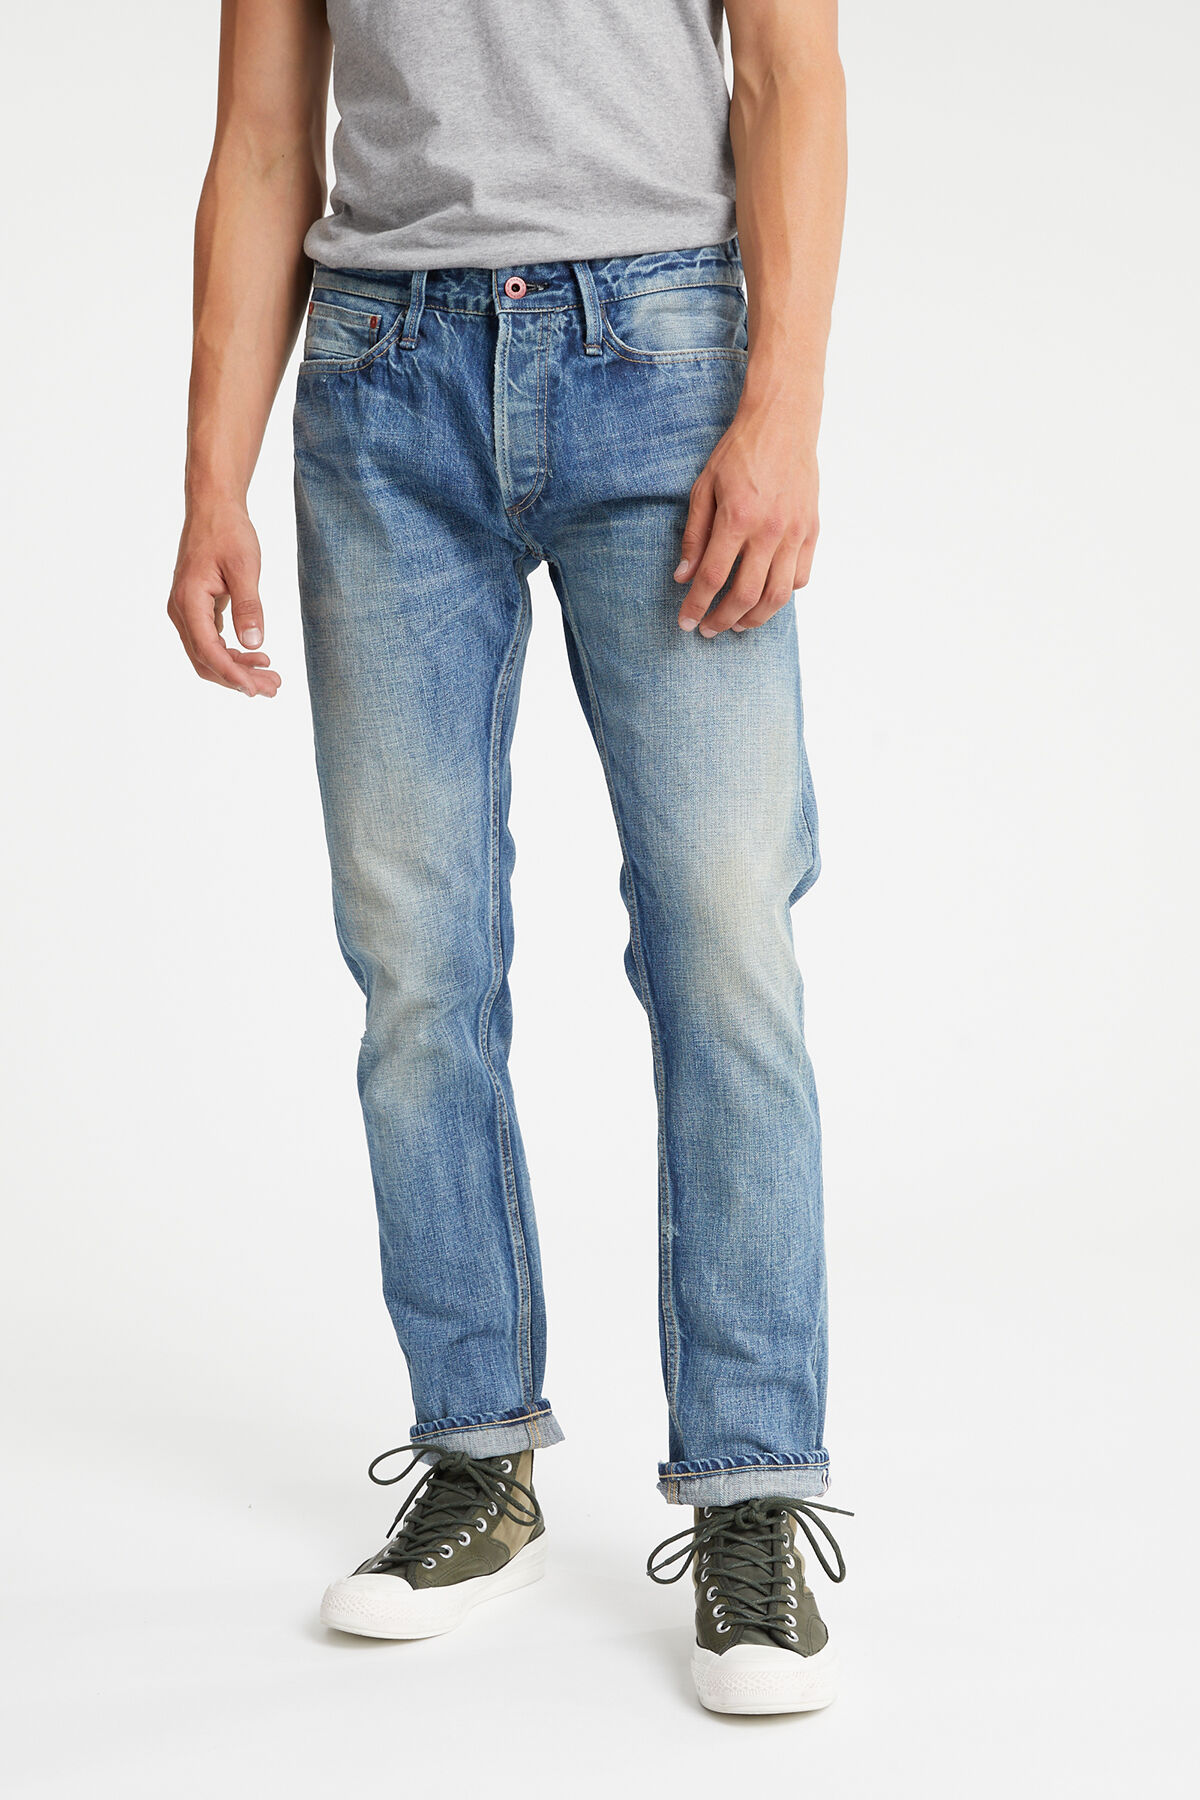 FORGE Mid-washed, Selvedge Denim - Relaxed Fit